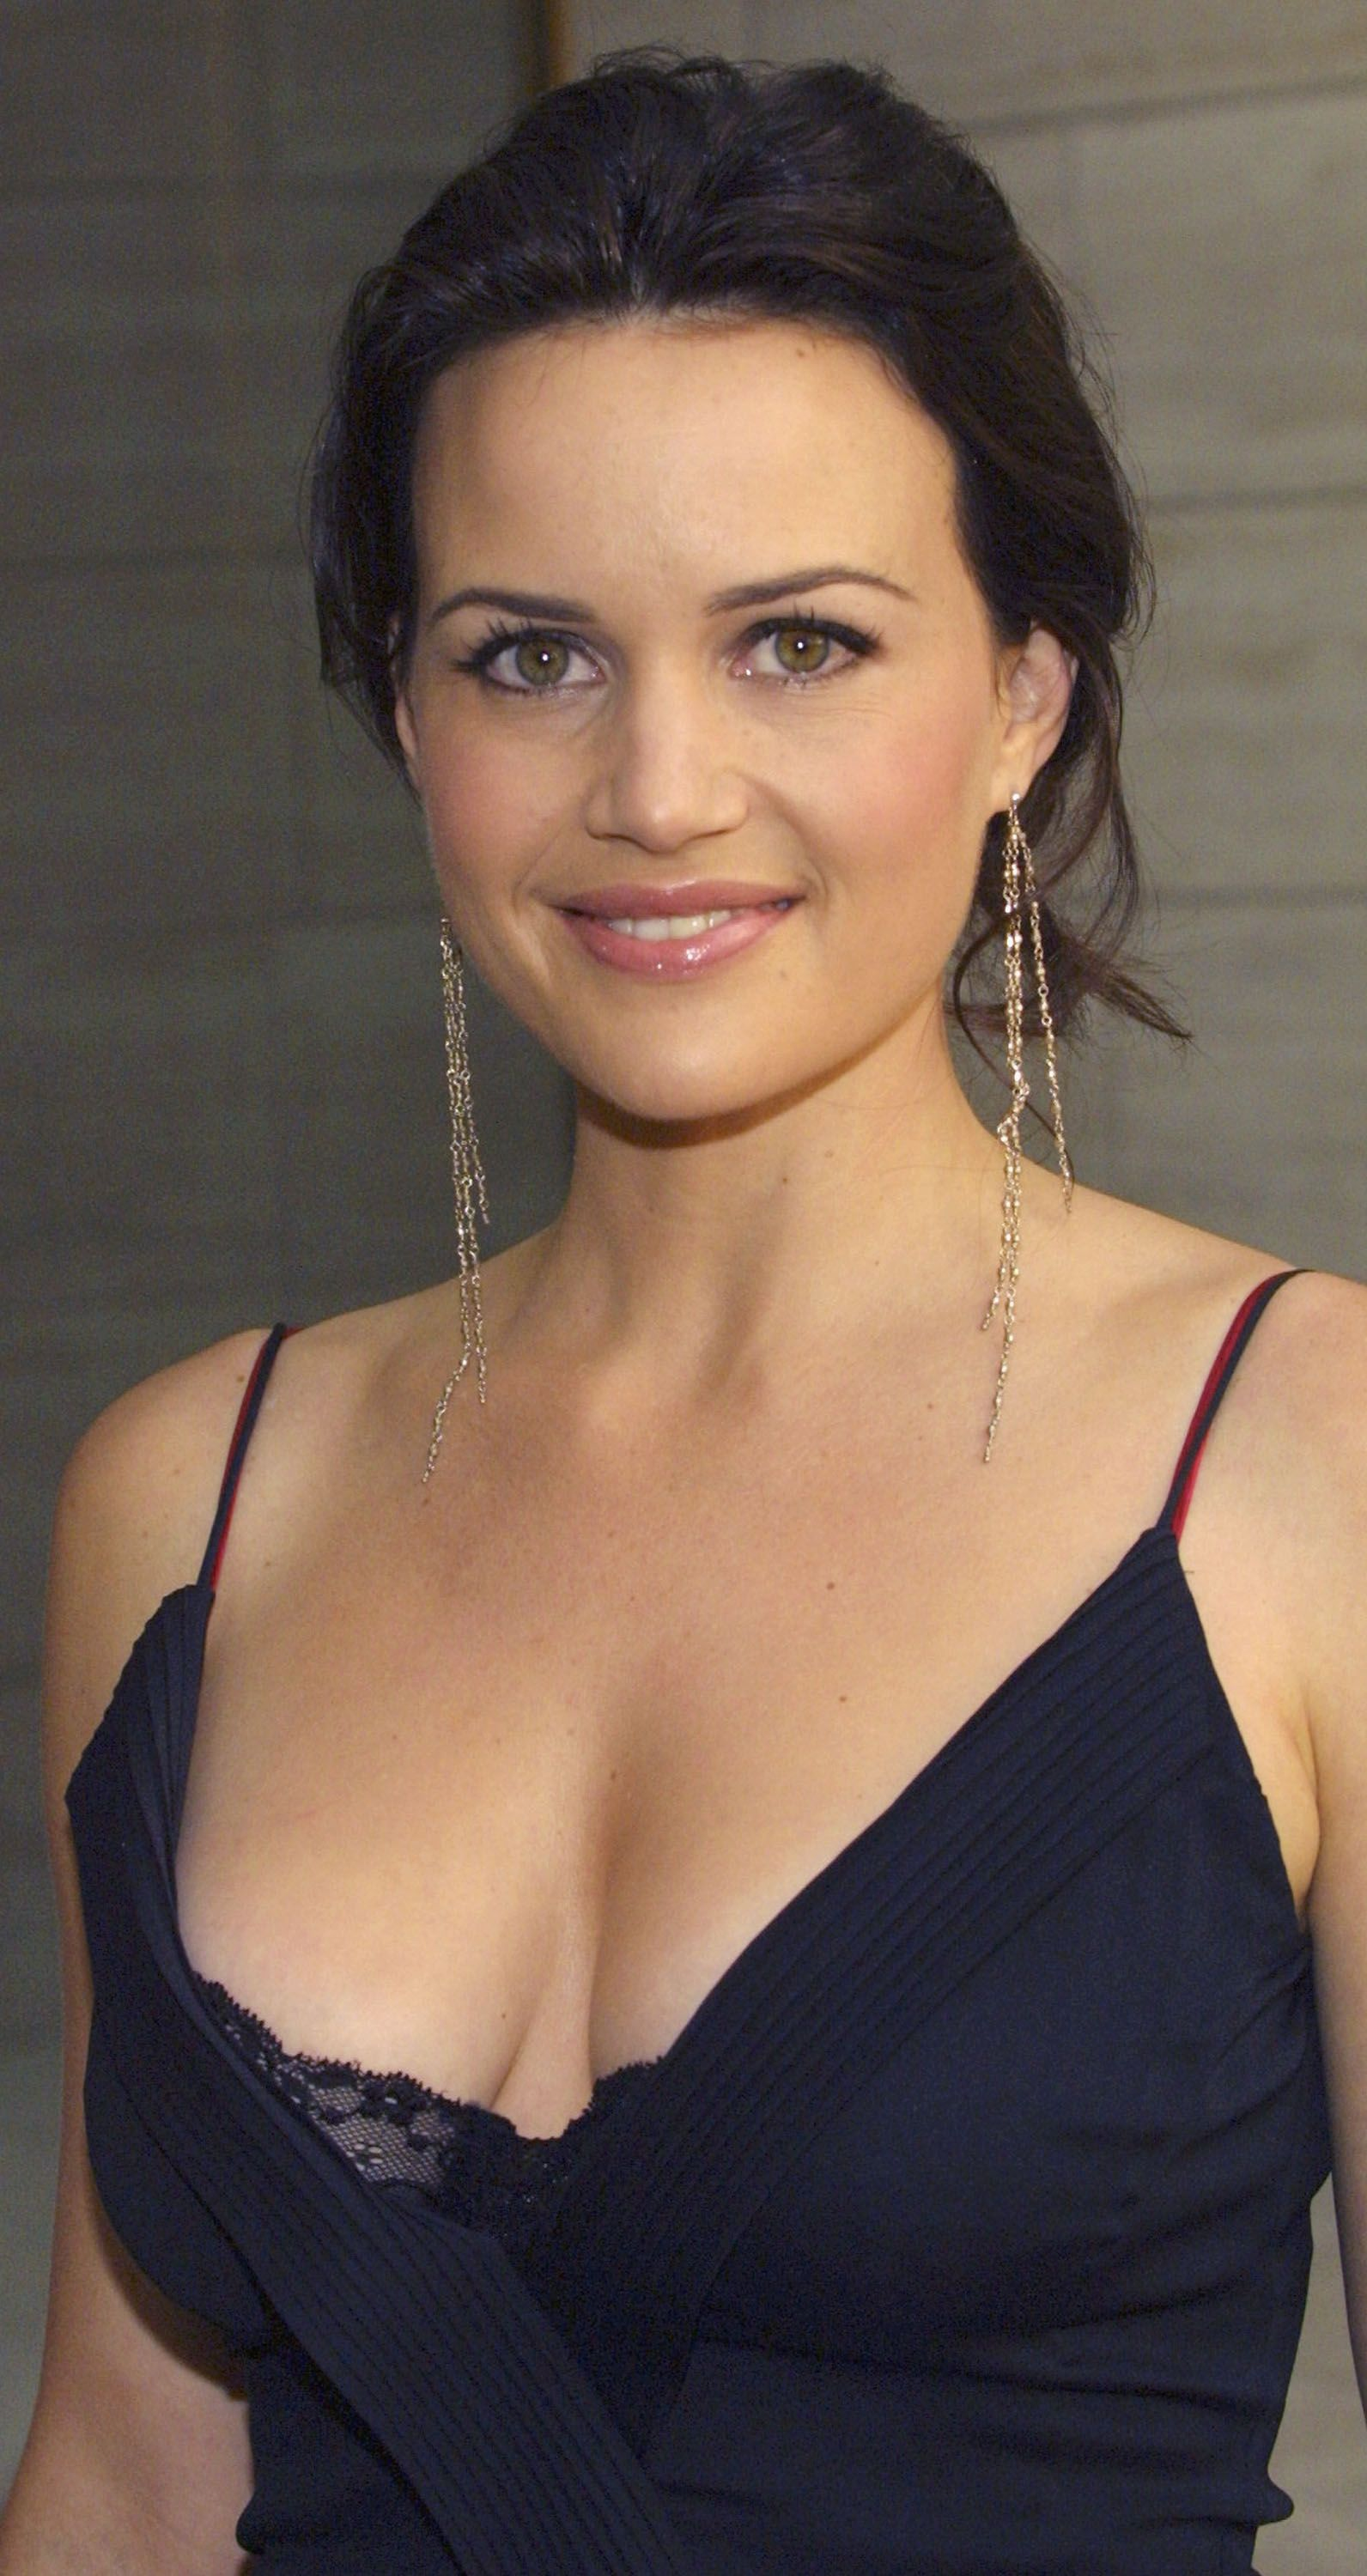 Carla Gugino naked (93 pictures) Video, YouTube, braless